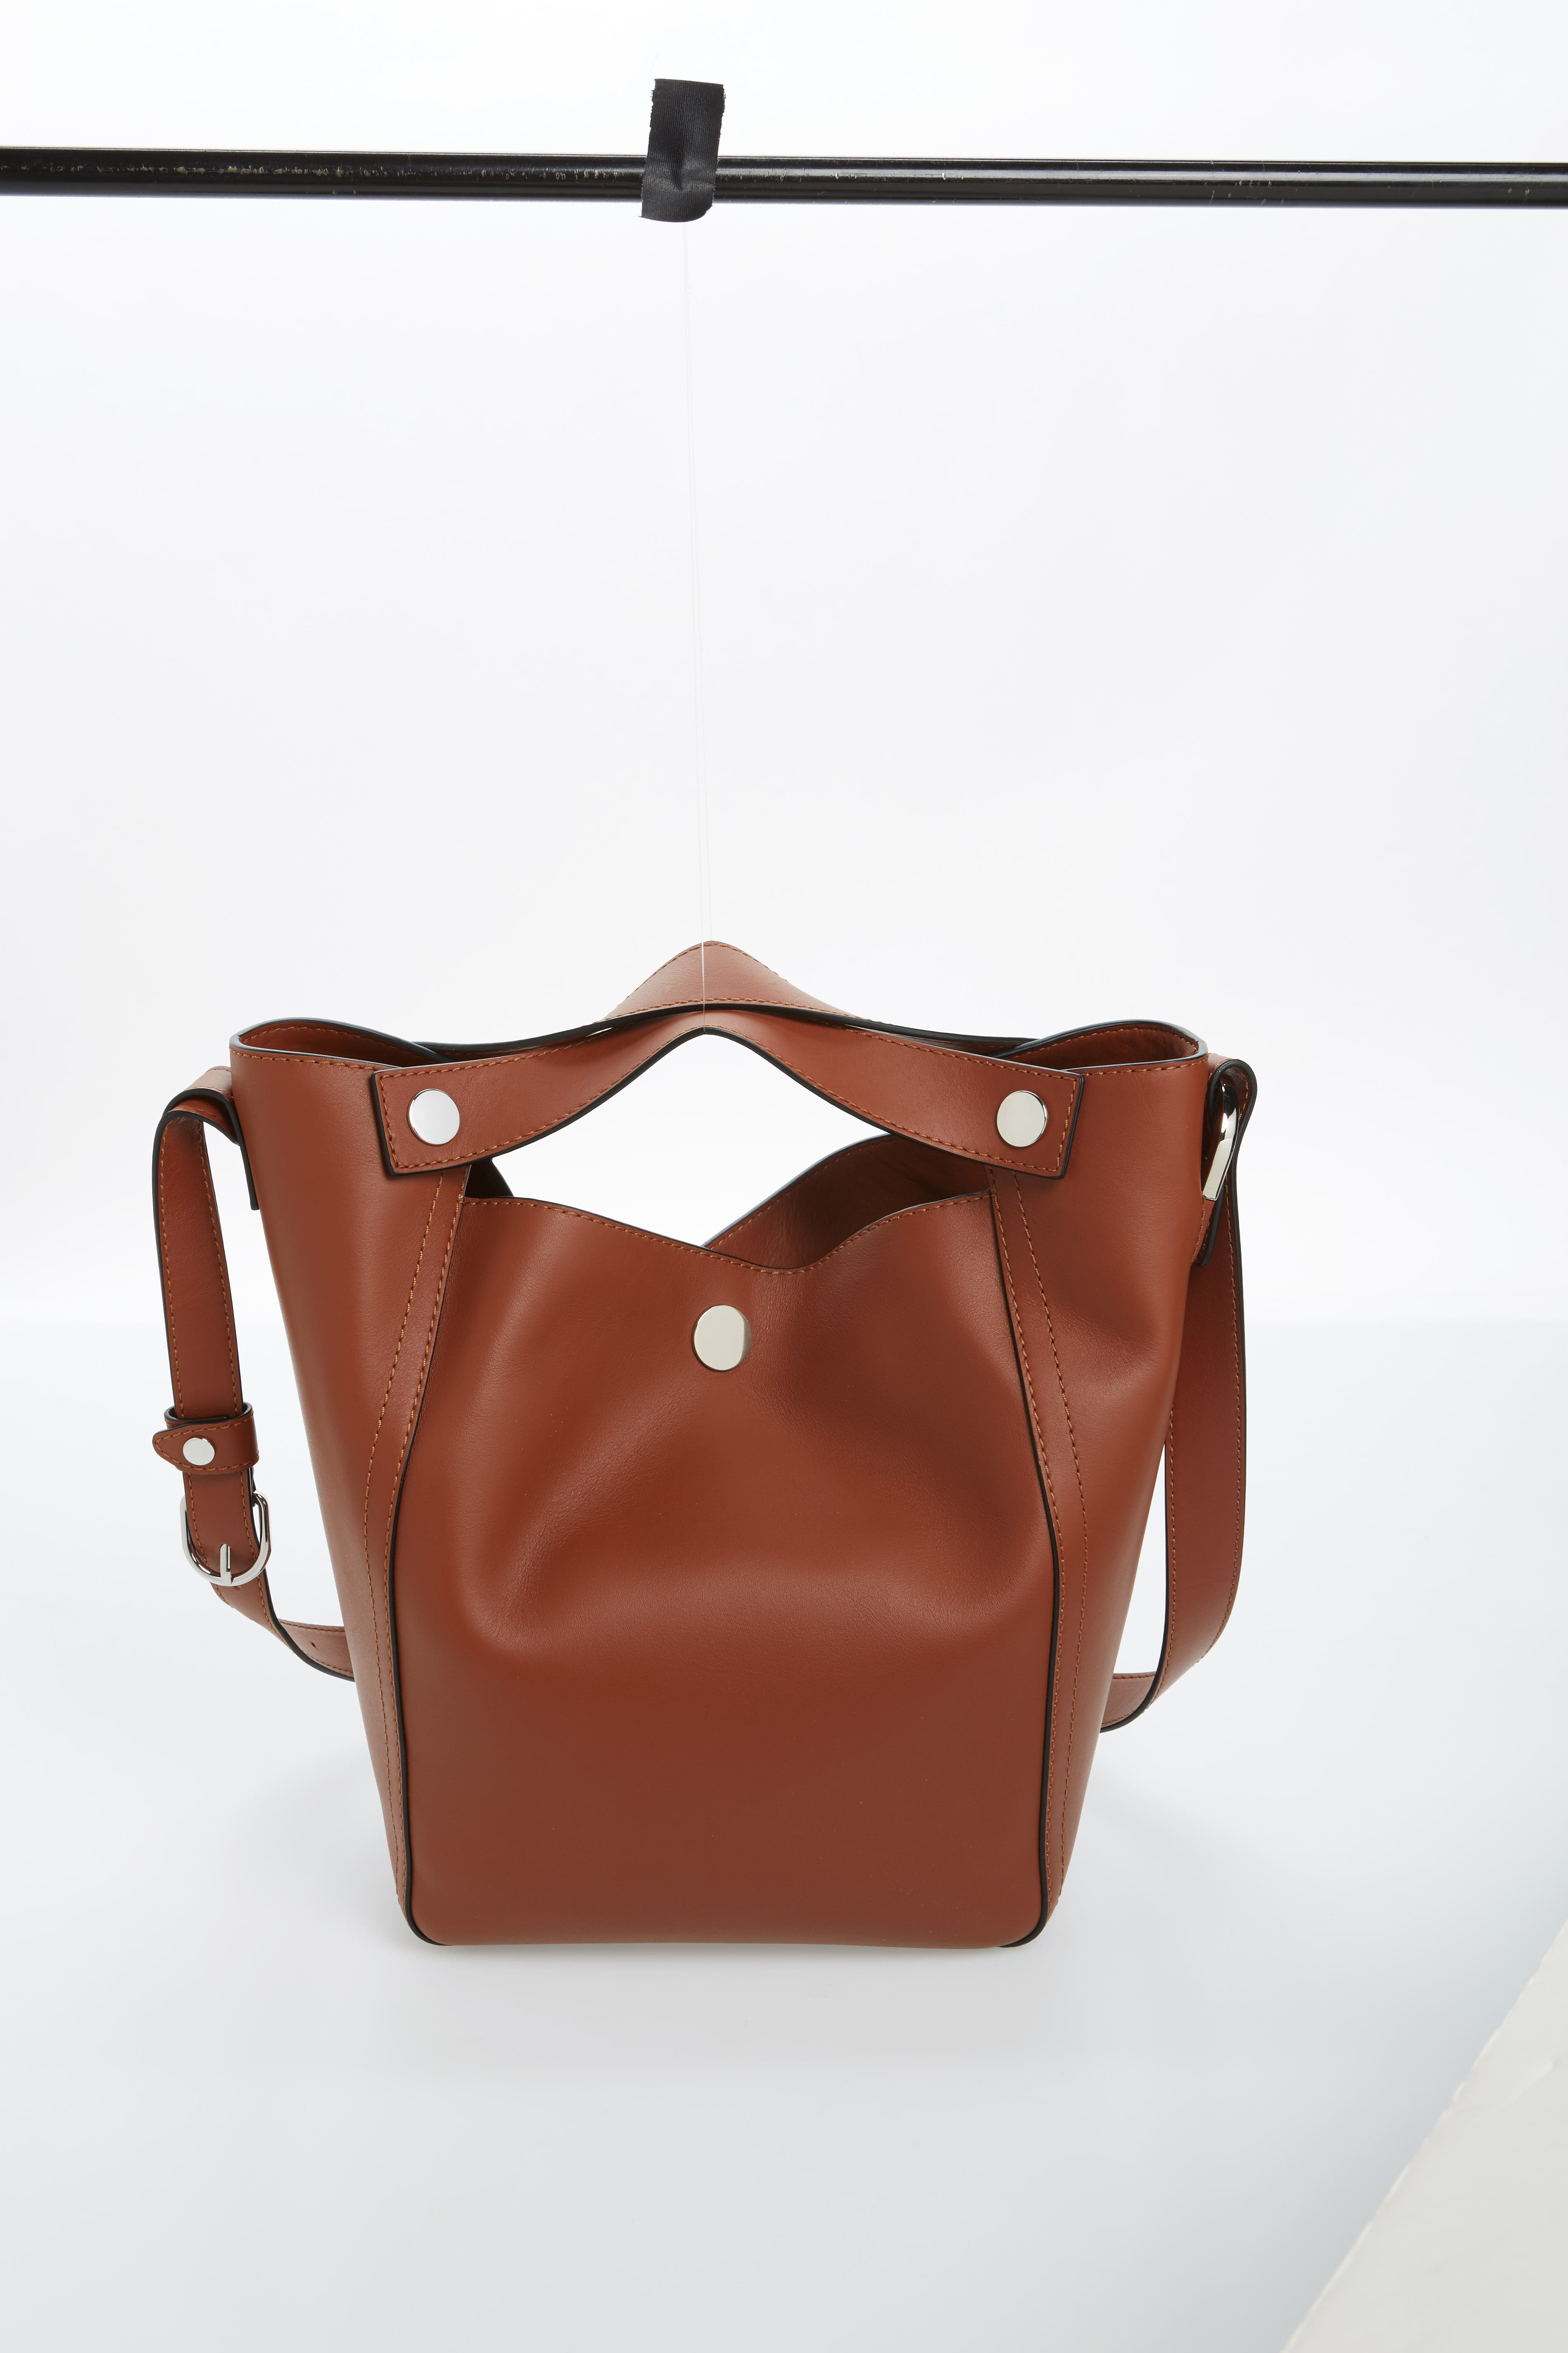 3.1 Phillip Lim Large Dolly Leather Tote